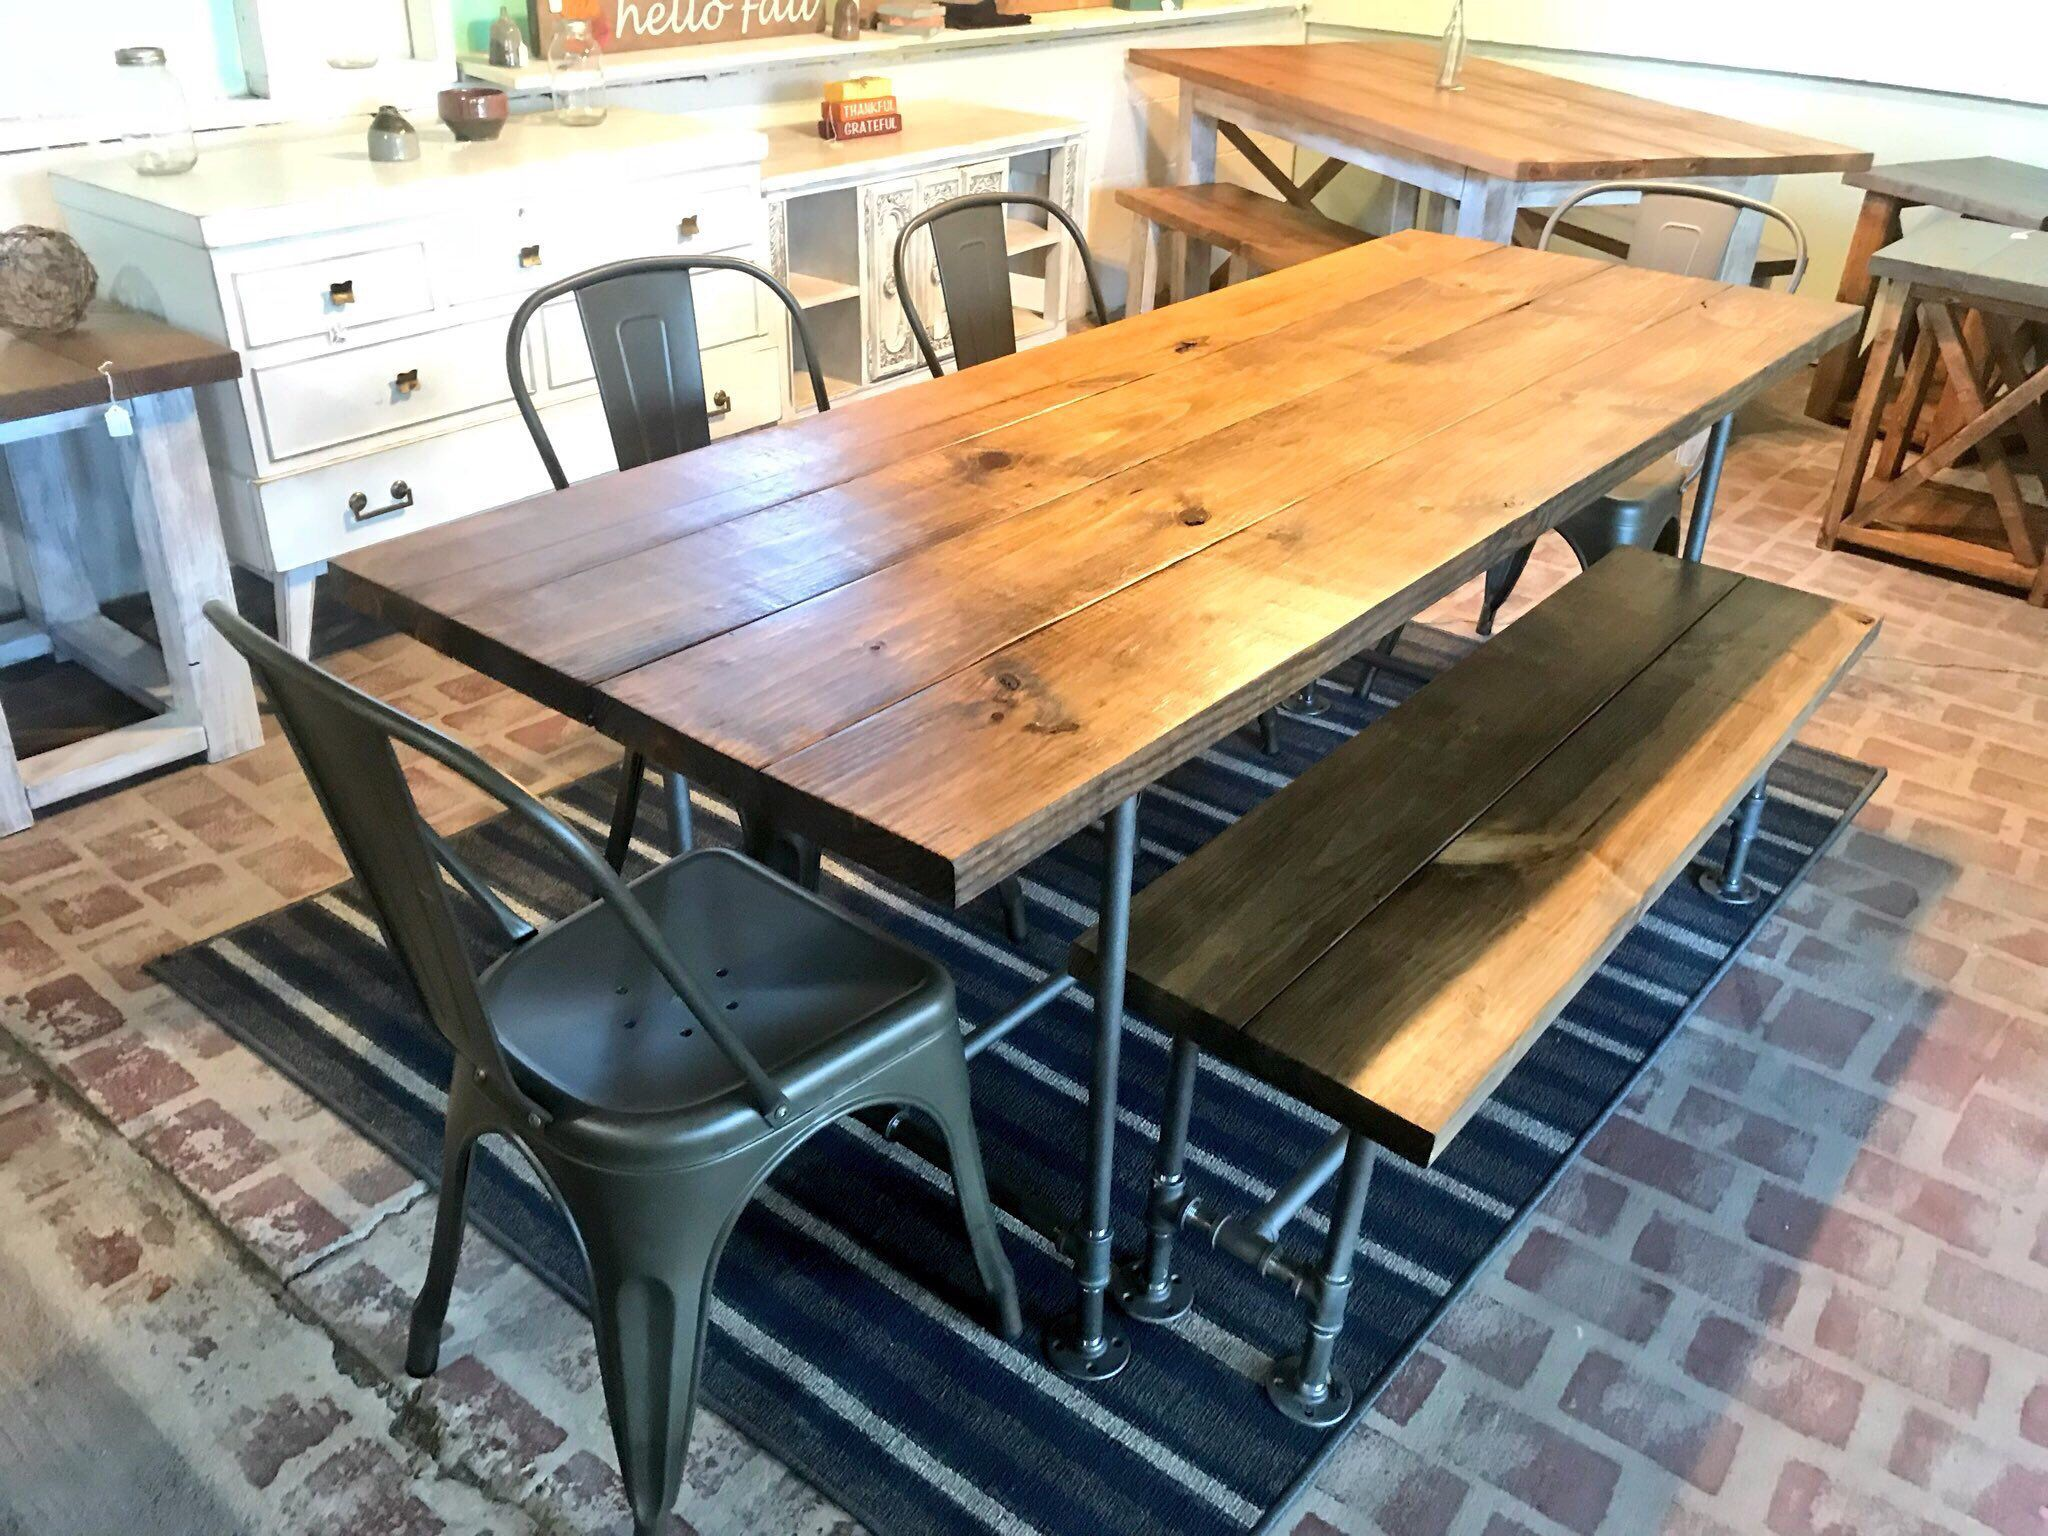 Industrial Style Farmhouse Table With Bench And Metal Chairs Etsy Farmhouse Table With Bench Industrial Farmhouse Table Metal Chairs